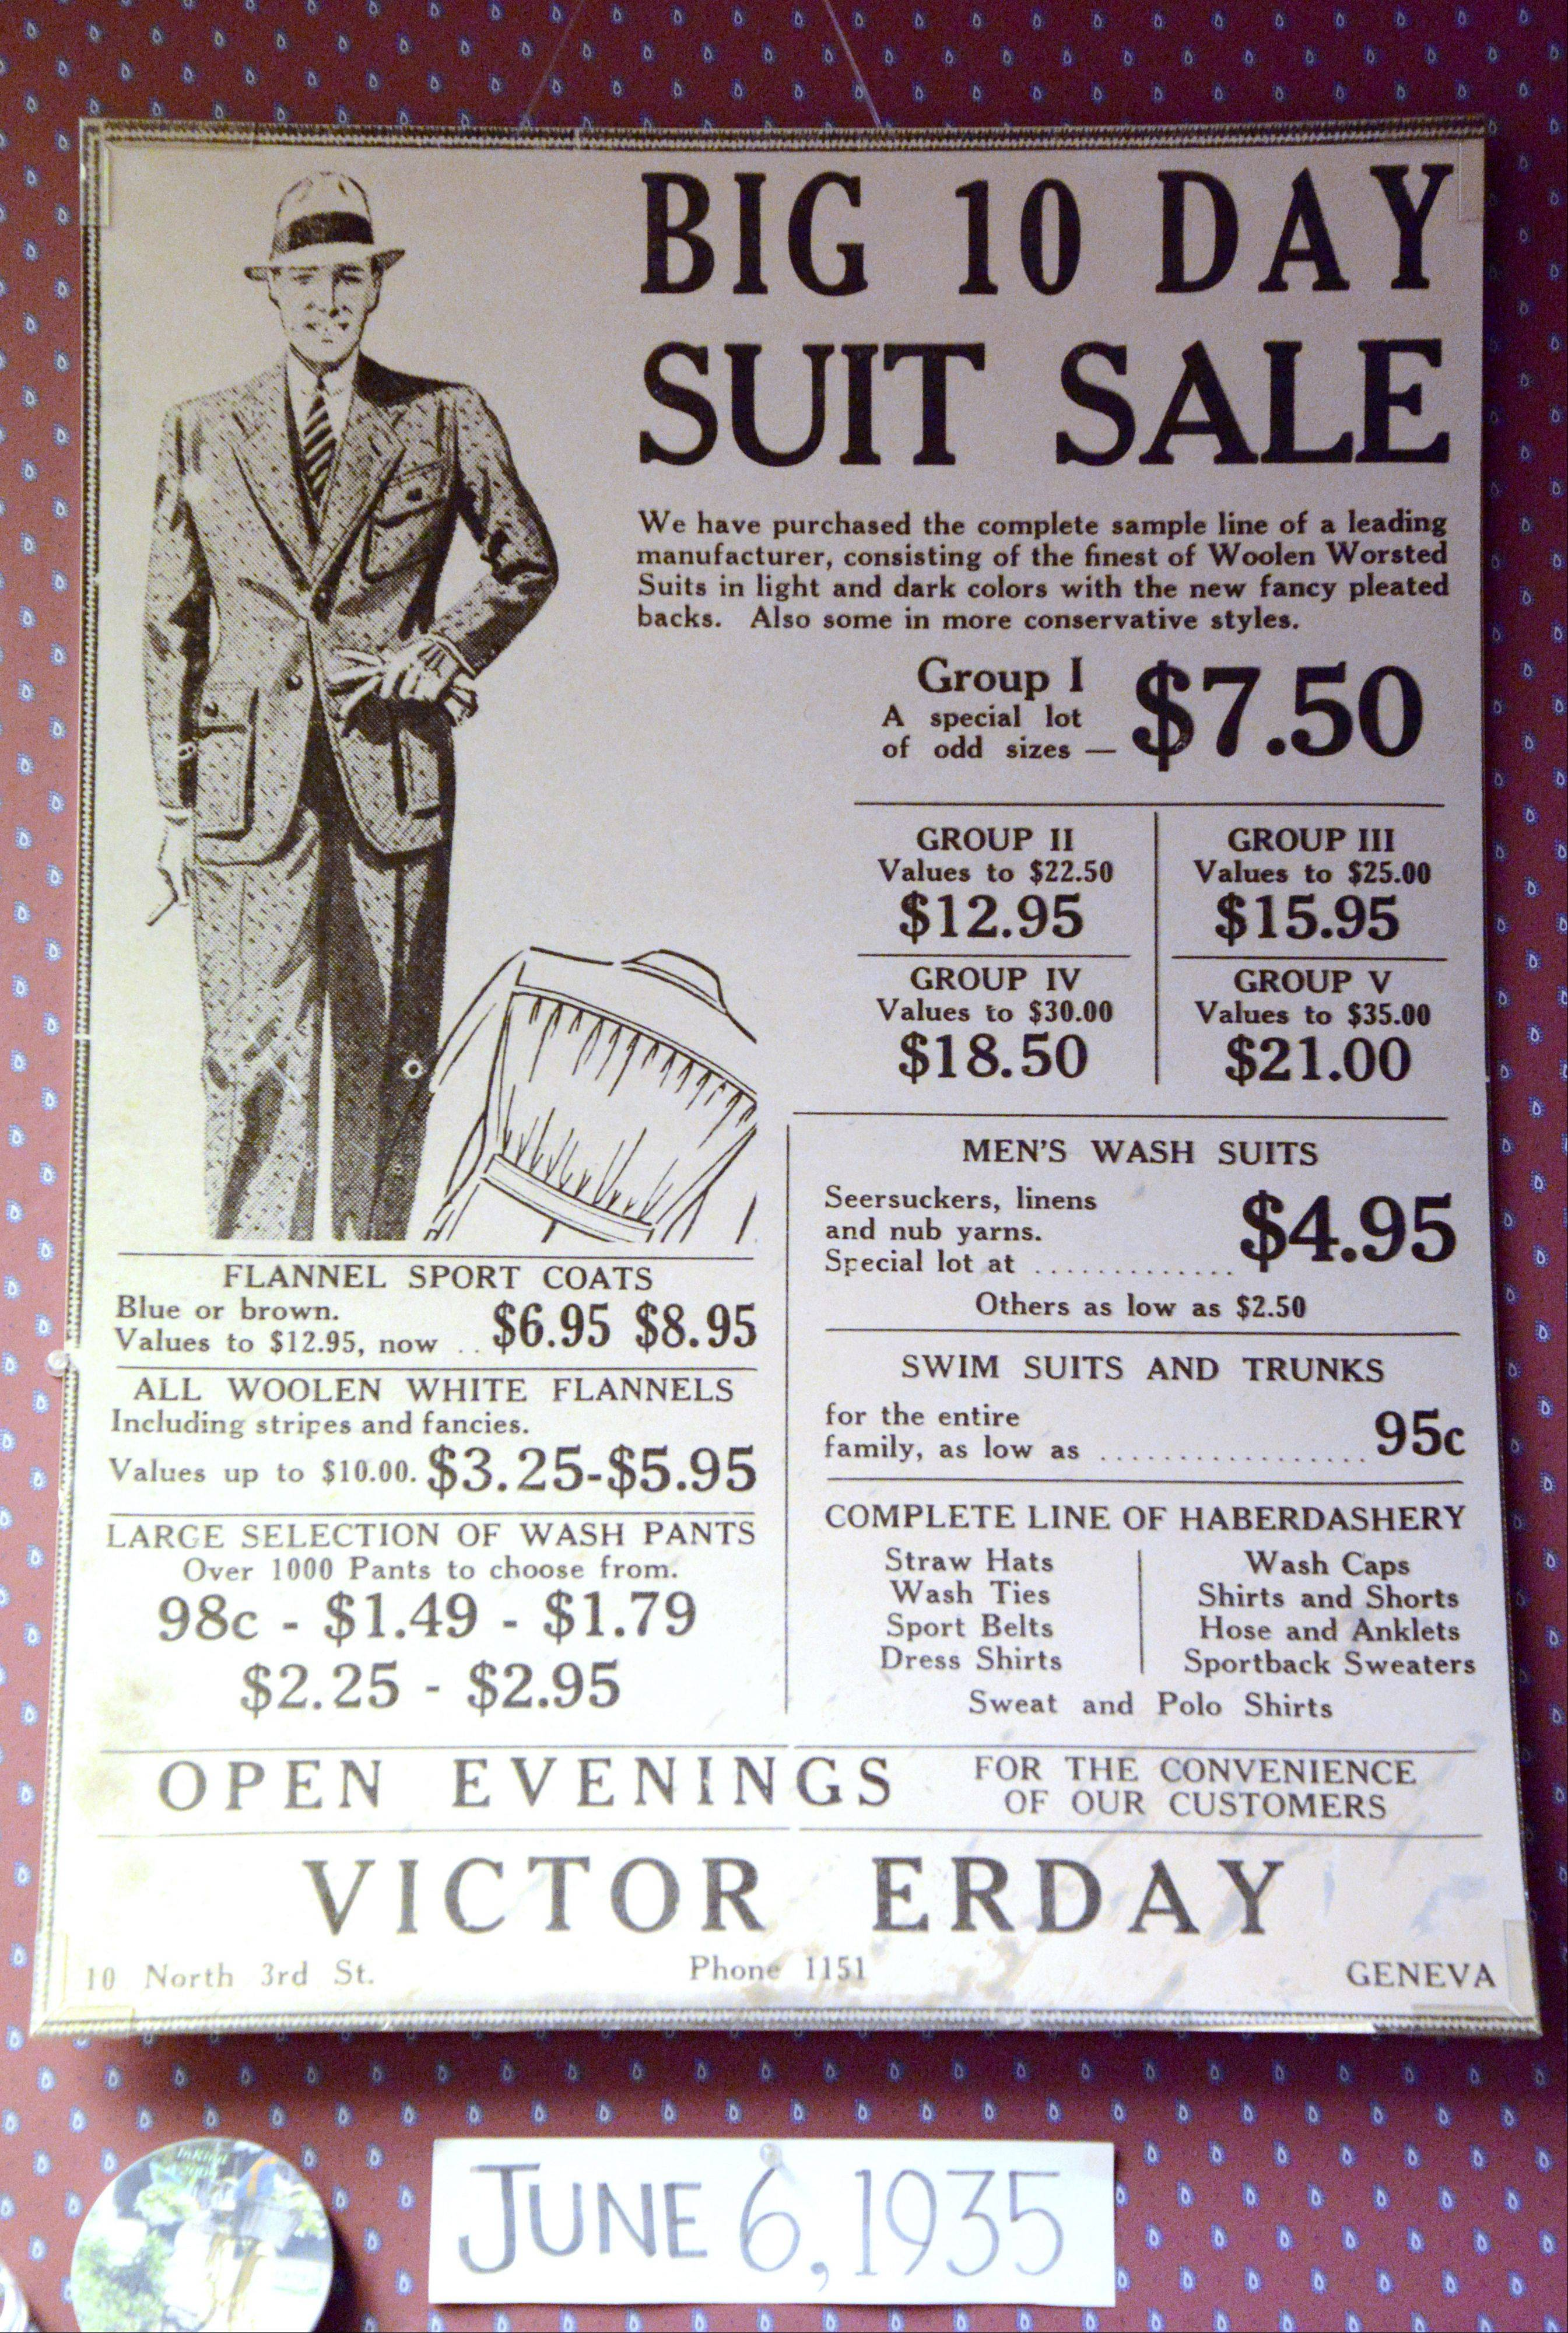 Erday's in downtown Geneva is closing after 88 years in business. The liquidation sale starts this week.